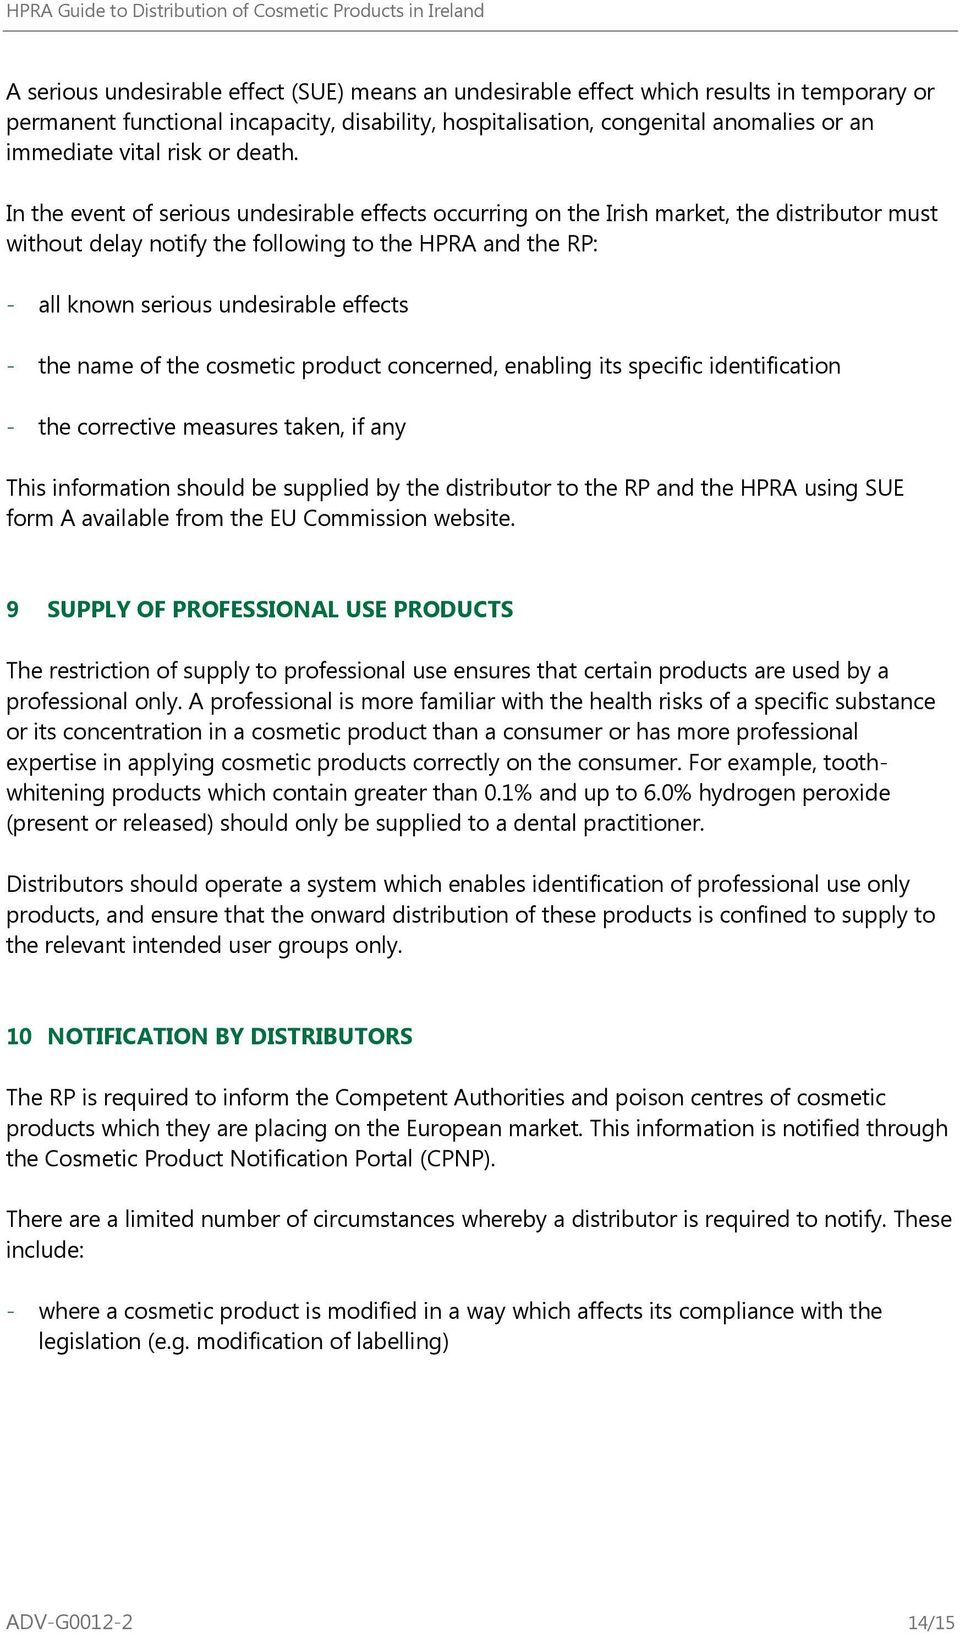 In the event of serious undesirable effects occurring on the Irish market, the distributor must without delay notify the following to the HPRA and the RP: - all known serious undesirable effects -